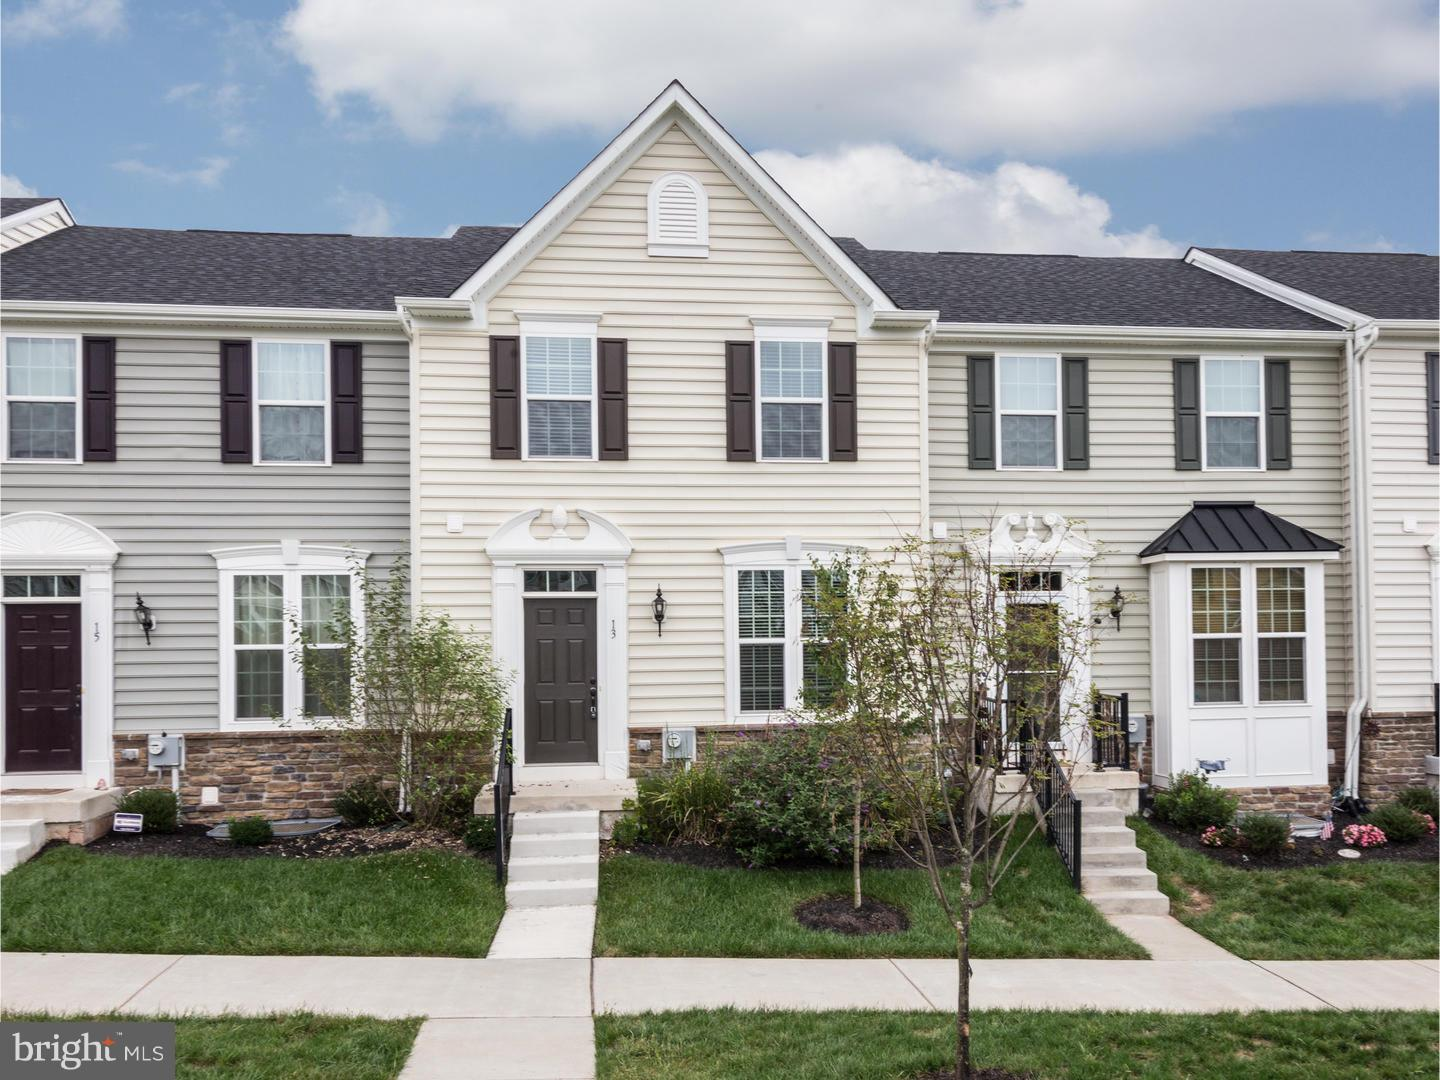 Motivated, Relocating Seller! YOU can own this home for 6K less than same model that was recently sold and get more upgrades! Transferrable 3.5% interest rate VA Loan if qualified! Welcome to this impressive 1-year young,like new town home in award winning Owen J Roberts Schools. Sought after Mozart Model in Washington Square has practically every upgrade possible that you will have to see in person to truly appreciate the over 40K in builder & owner upgrades which includes the lot premium! Walk in to the front door and walk directly into the very spacious, open concept living room, kitchen & dining area with beautiful hardwood floors. The Kitchen features granite counters ,custom tile backsplash, upgraded appliances, cabinets, & fixtures. The oversized island is the perfect touch to combine the kitchen with the dining room.  20x10 no maintenance trex deck, is set back from the adjoining homes for added privacy. Powder Room on this level rounds off this floor for added daily convenience. The upper level features the master suite with large walk in closet. The master bath includes an oversized custom tile shower with glass tile accent, granite counter w/ double sink & gorgeous tile floors. The washer/dryer are placed perfectly in the hall between the 2nd & 3rd bedroom, which are both spacious w/ ample closet space & both overlook the park-like square out front. Lower level you will find the finished basement with 2 walk in closets for added storage.Direct access to the oversized 2-car garage w/ added parking. Great Location-conveniently located close to highways, shopping & restaurants. Minutes from downtown Phoenixville, Valley Forge, KoP, Phila Premium Outlets & Providence Town Center.